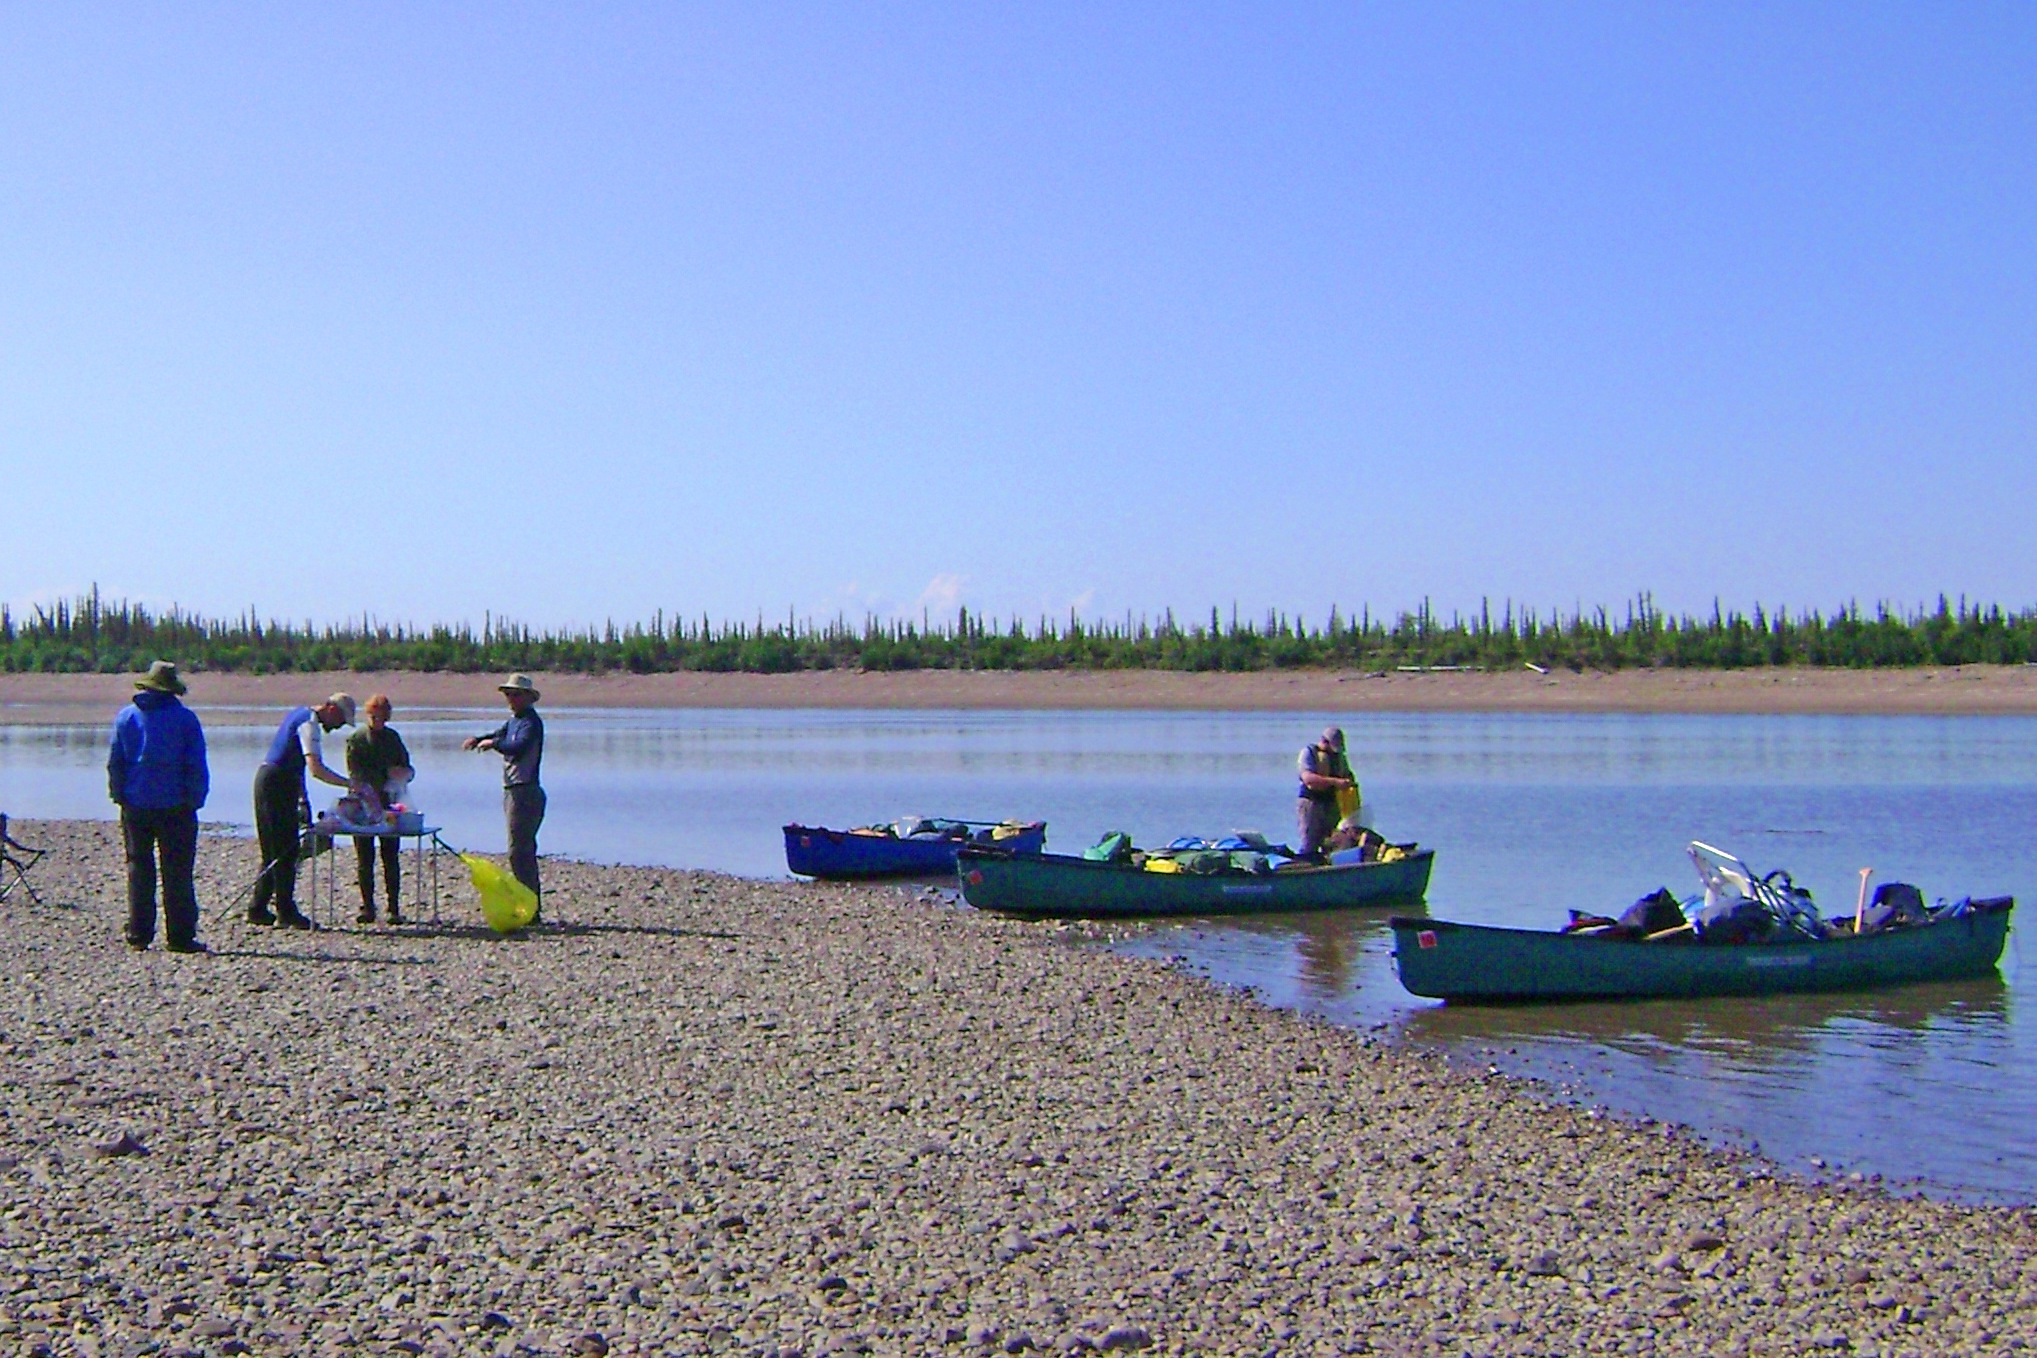 Participants stop for lunch on a rock beach along the Porcupine River; canoes sit in the water along the shore.